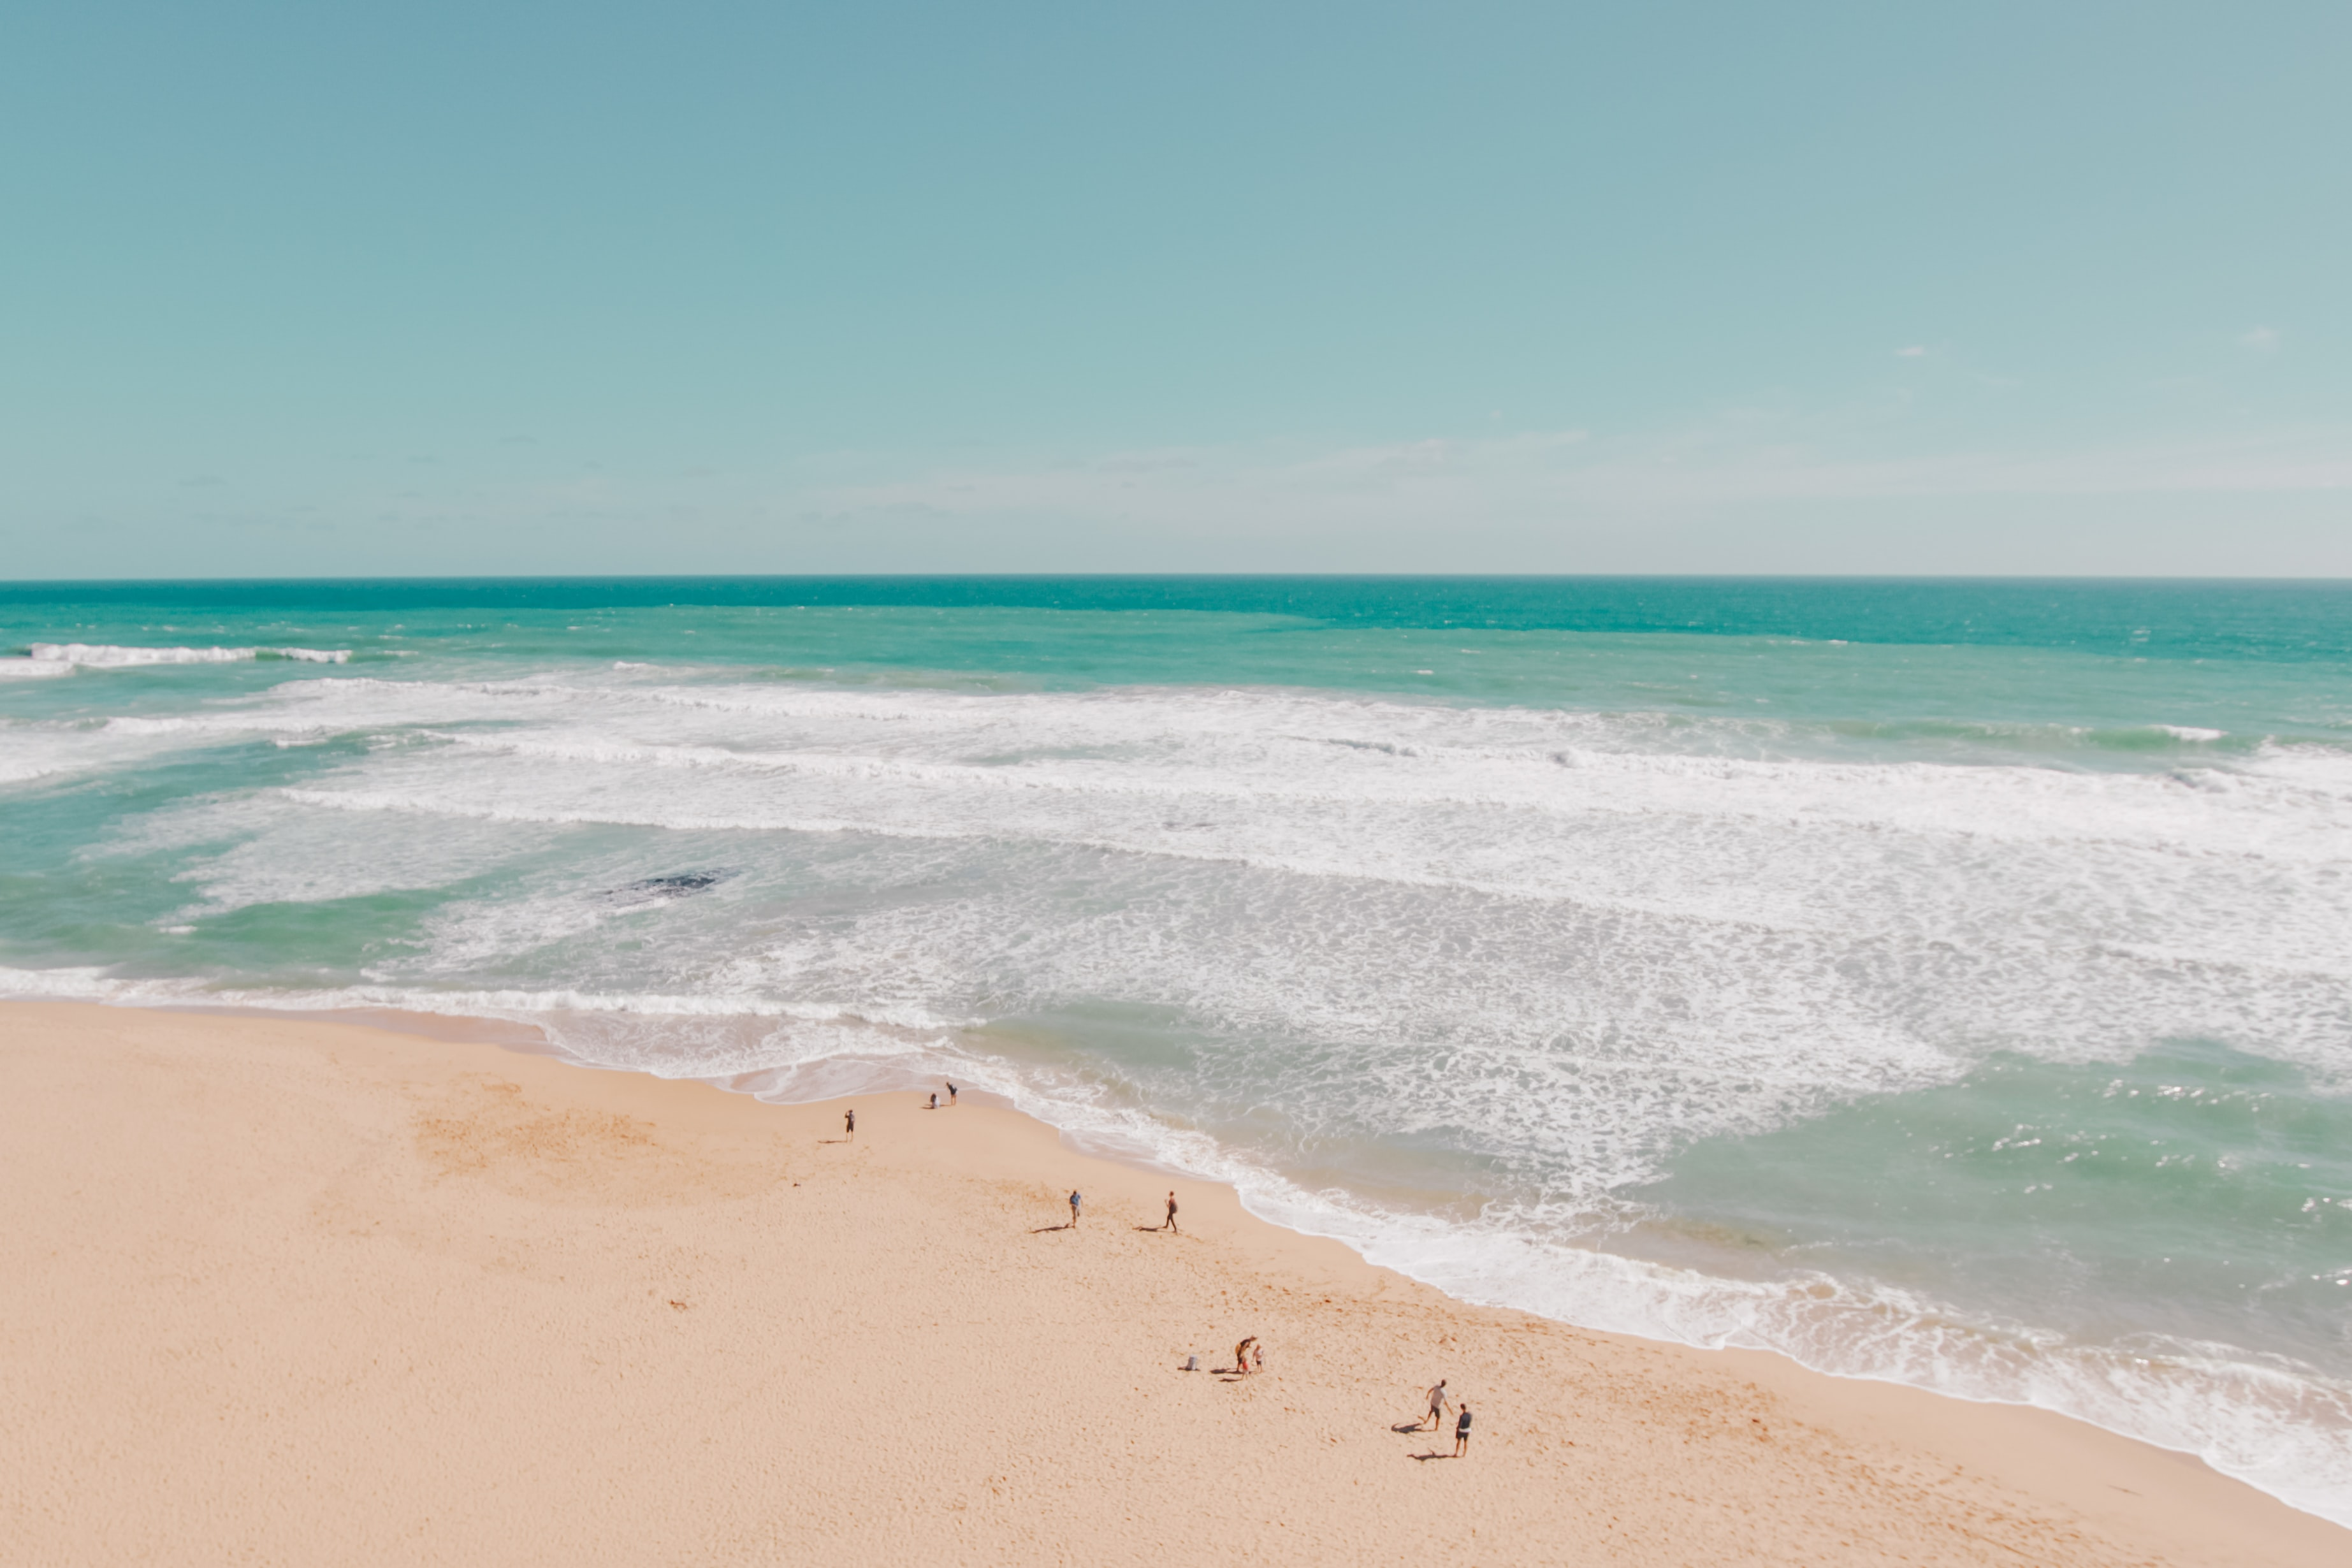 Drone view of the people on the sand beach at Great Ocean Road